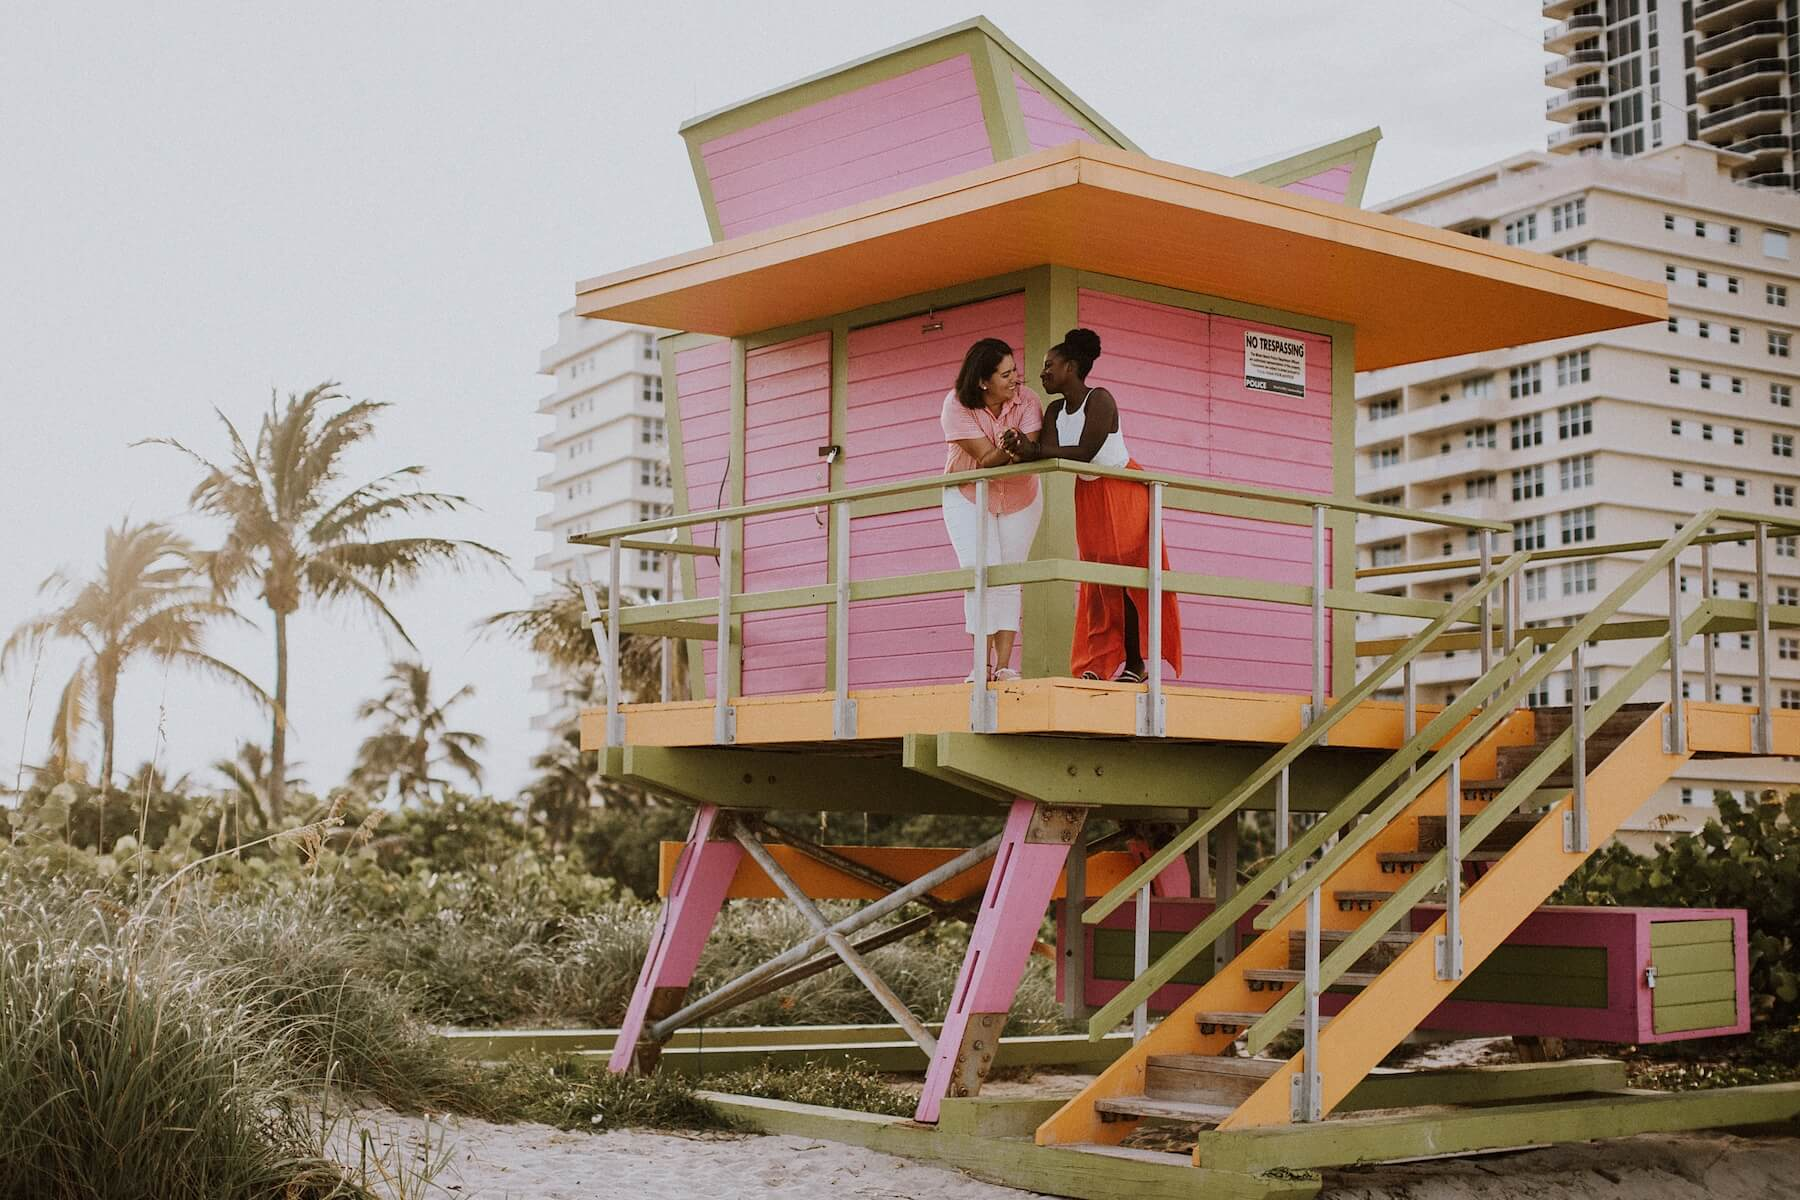 LGBTQ couple in a lifeguard station on the beach in Miami, Florida